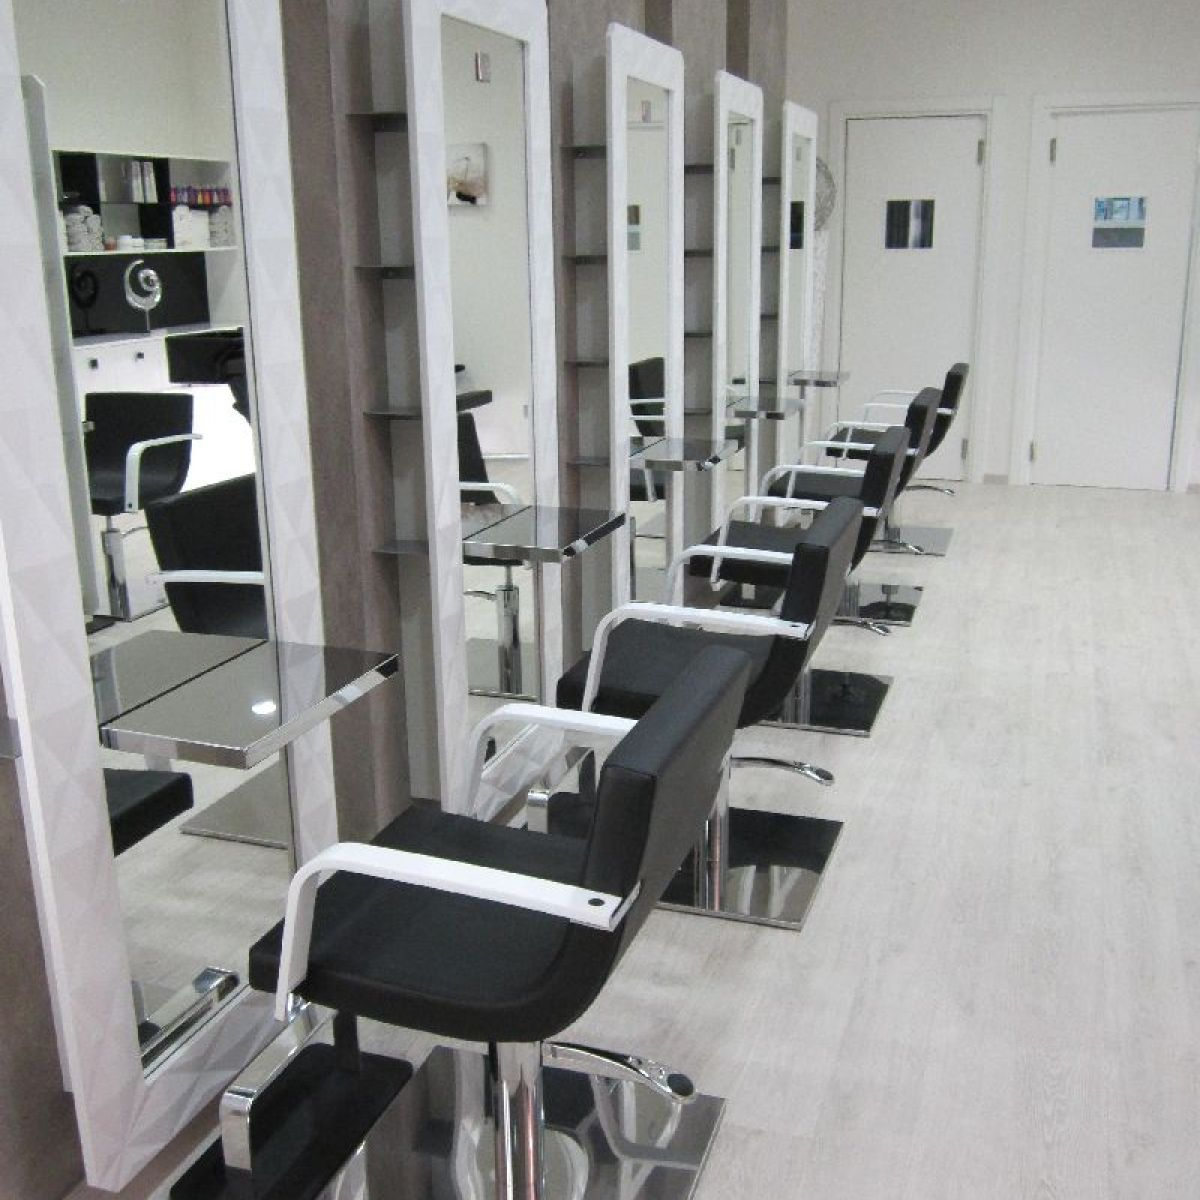 Nelson mobilier hair salon furniture made in france for Interieur stylist